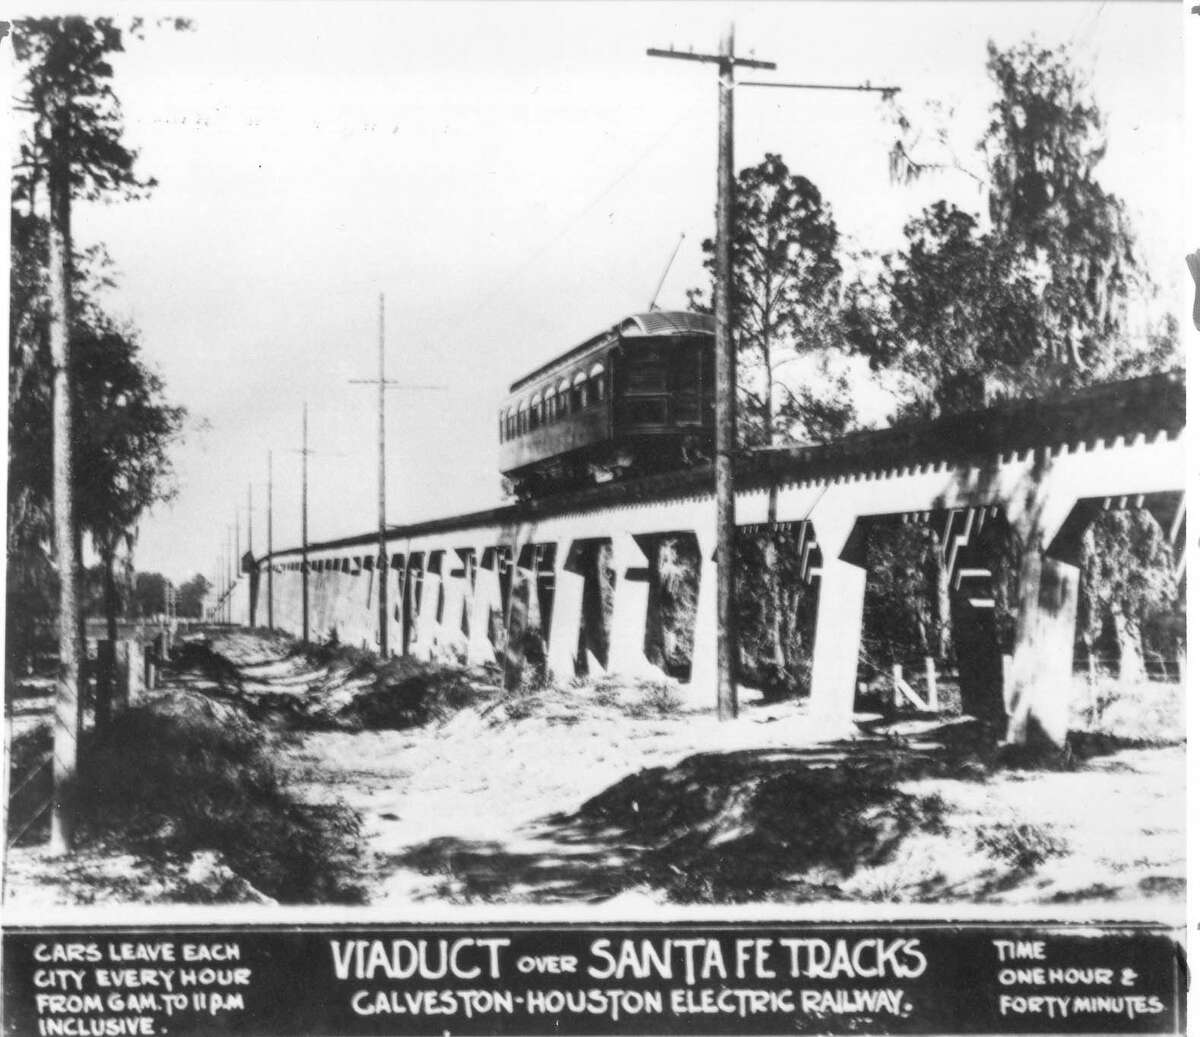 This interurban viaduct over the Sante Fe tracks is constructed entirely of concrete reinforced with steel, the latest technology when it was built in 1911.